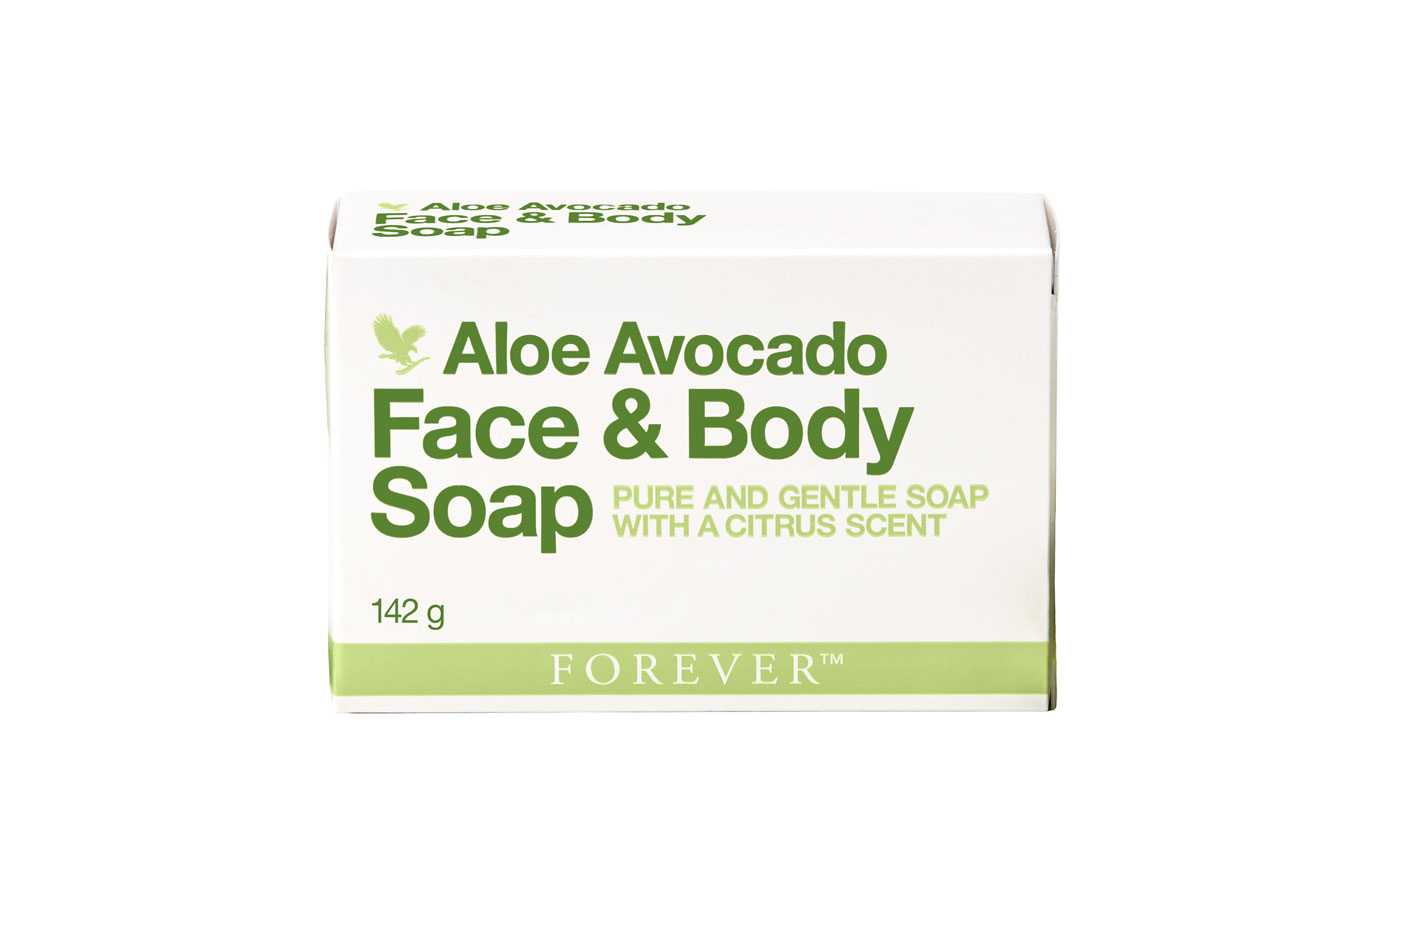 Forever's pure inner leaf aloe vera gel has been combined with a unique blend of botanicals and creamy avocado to deeply moisturise and gently cleanse, leaving skin feeling soft and supple. The Aloe Avocado Face & Body Soap is gentle enough for your entire body and face and leaves behind a scent of freshly-picked citrus. The richness of the avocado also helps dry skin feel smooth thanks to beneficial vitamins like A, C and E.​